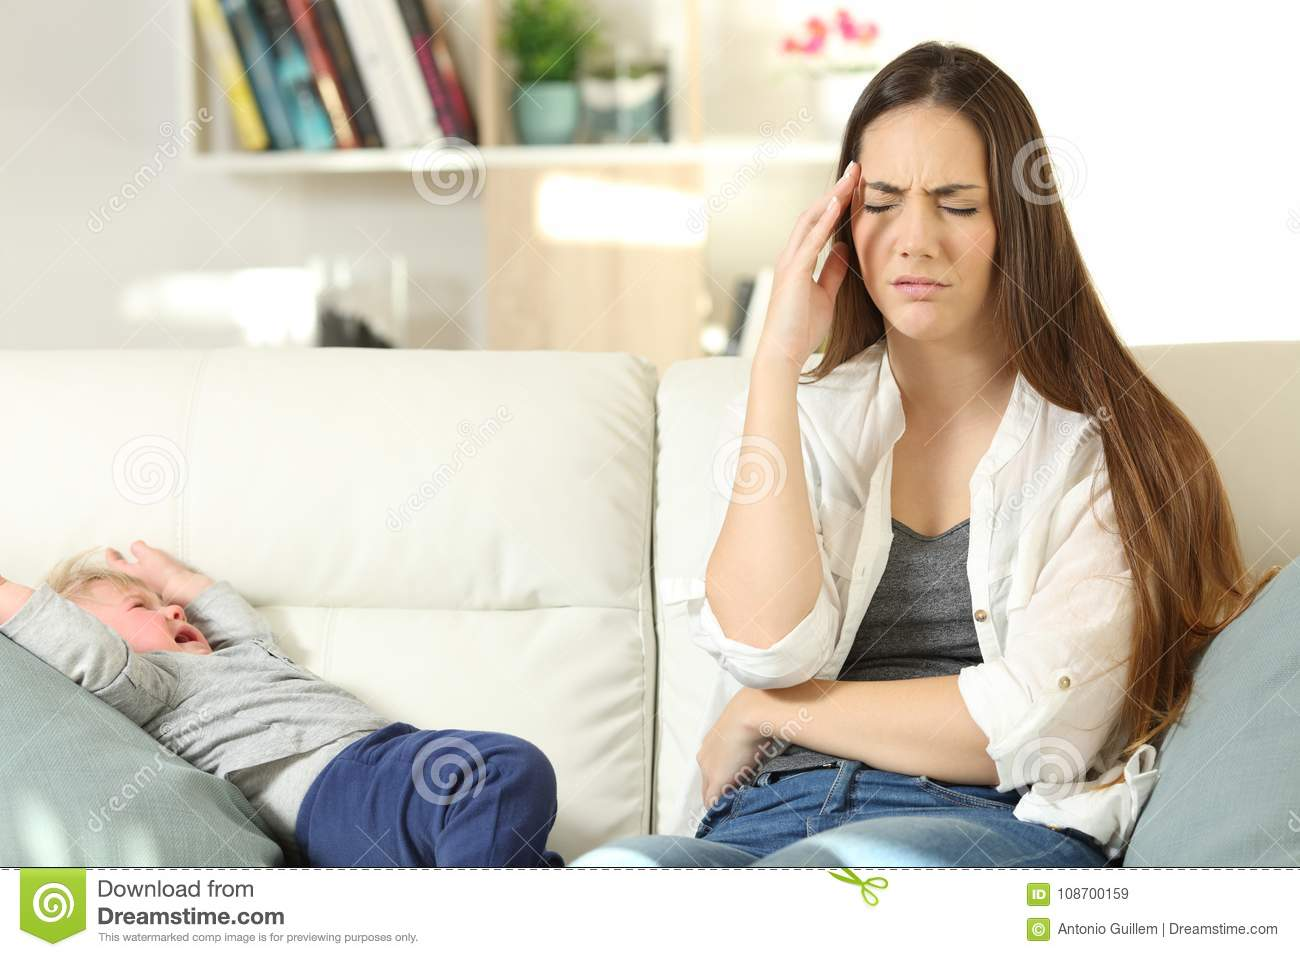 Annoyed mother and baby crying on a couch